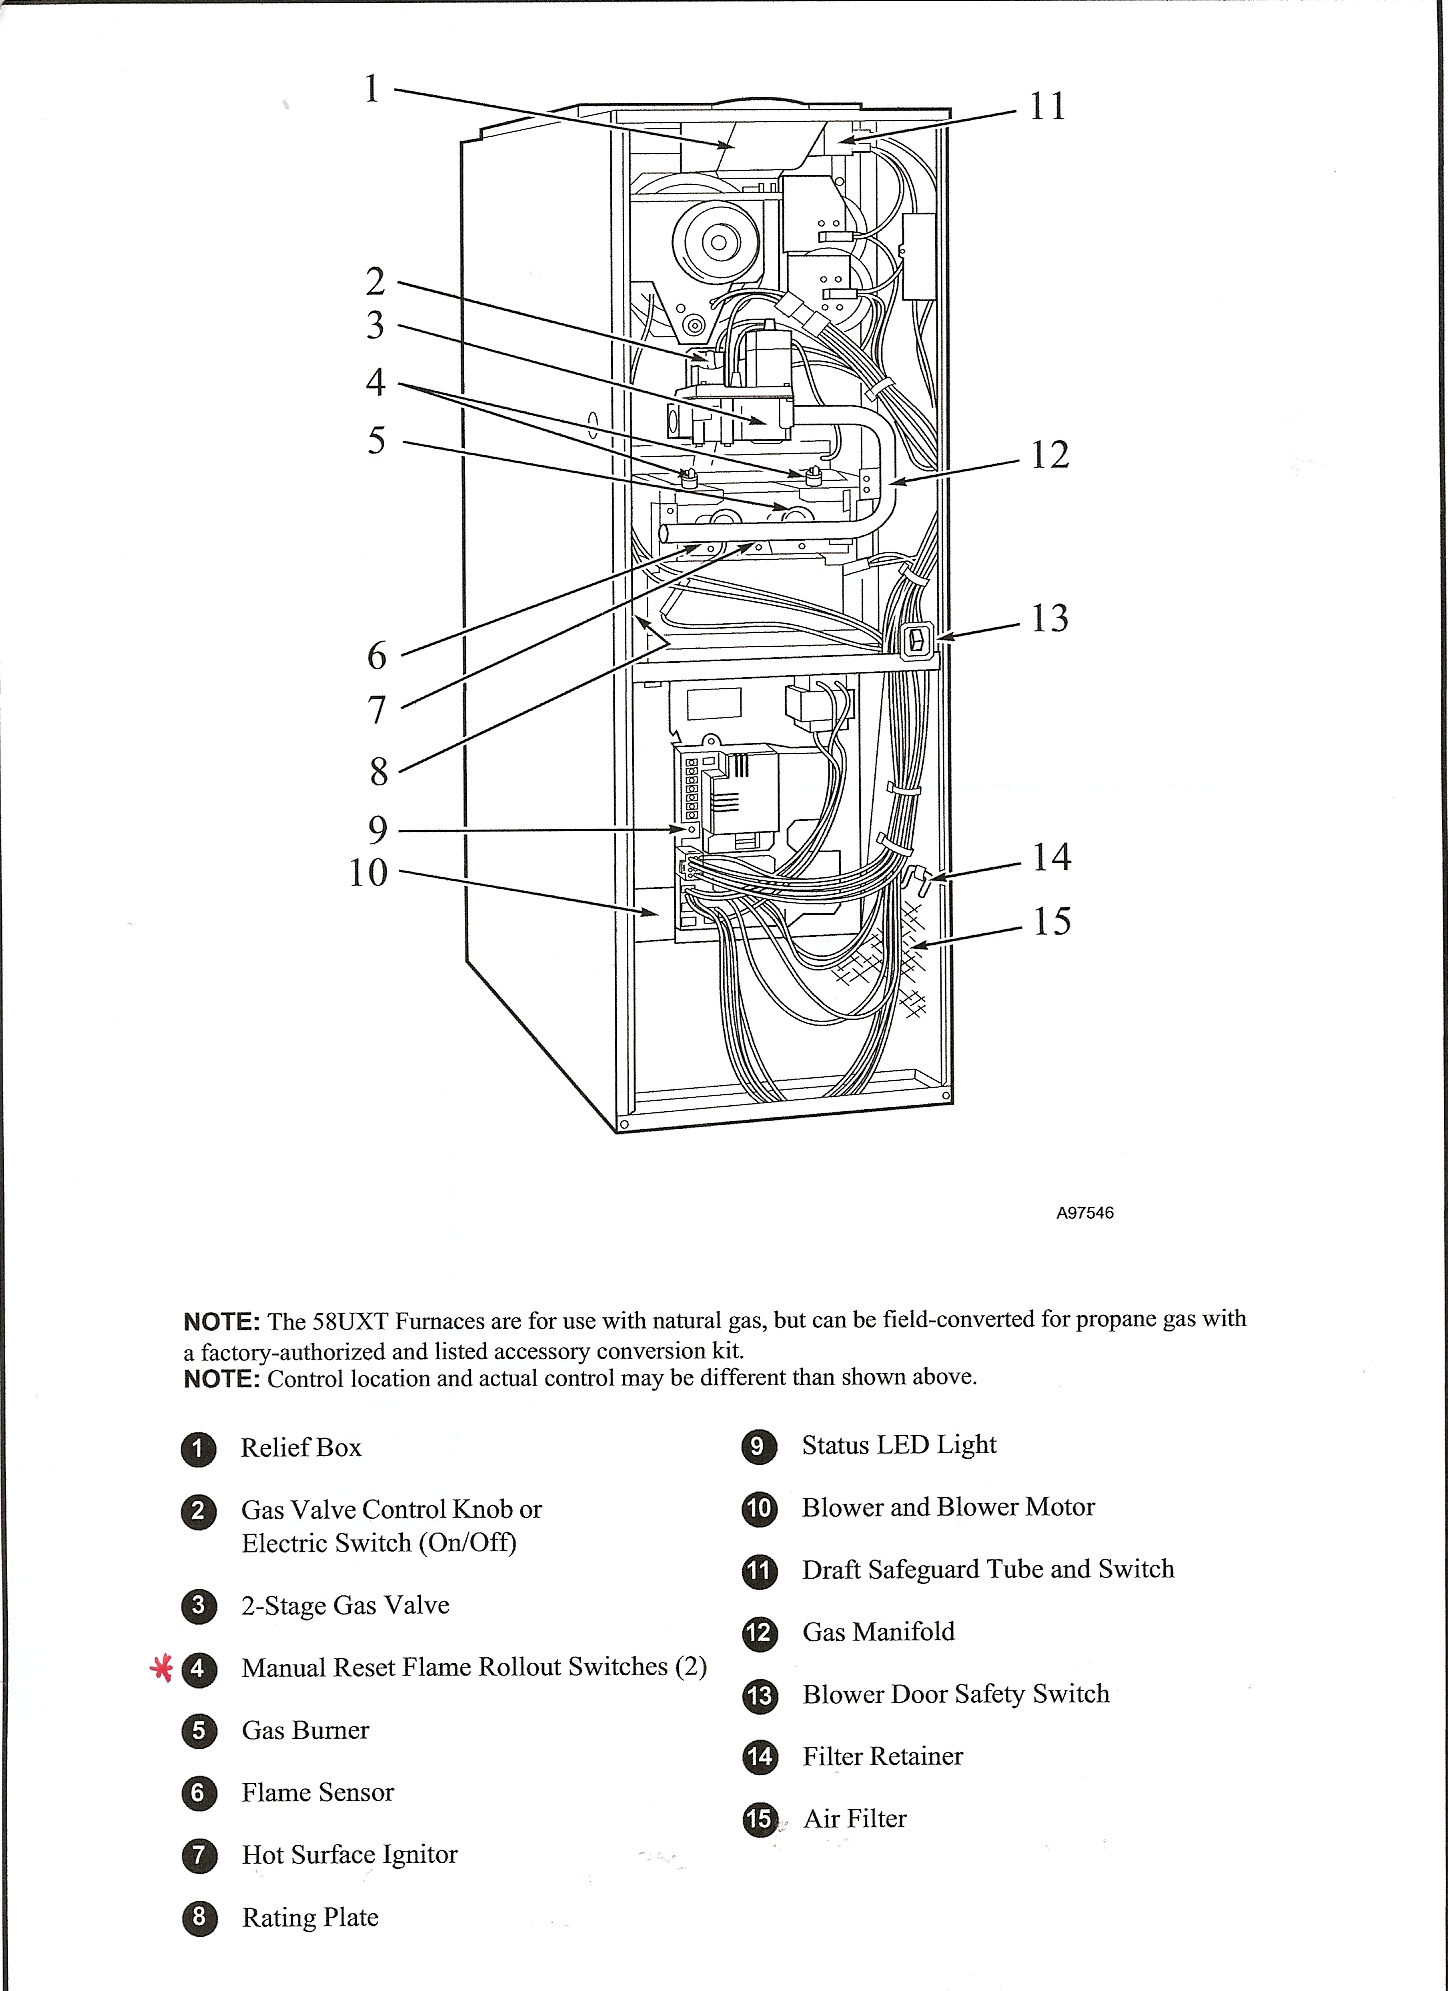 carrier wiring diagram air handler three phase star delta lennox fuse location size